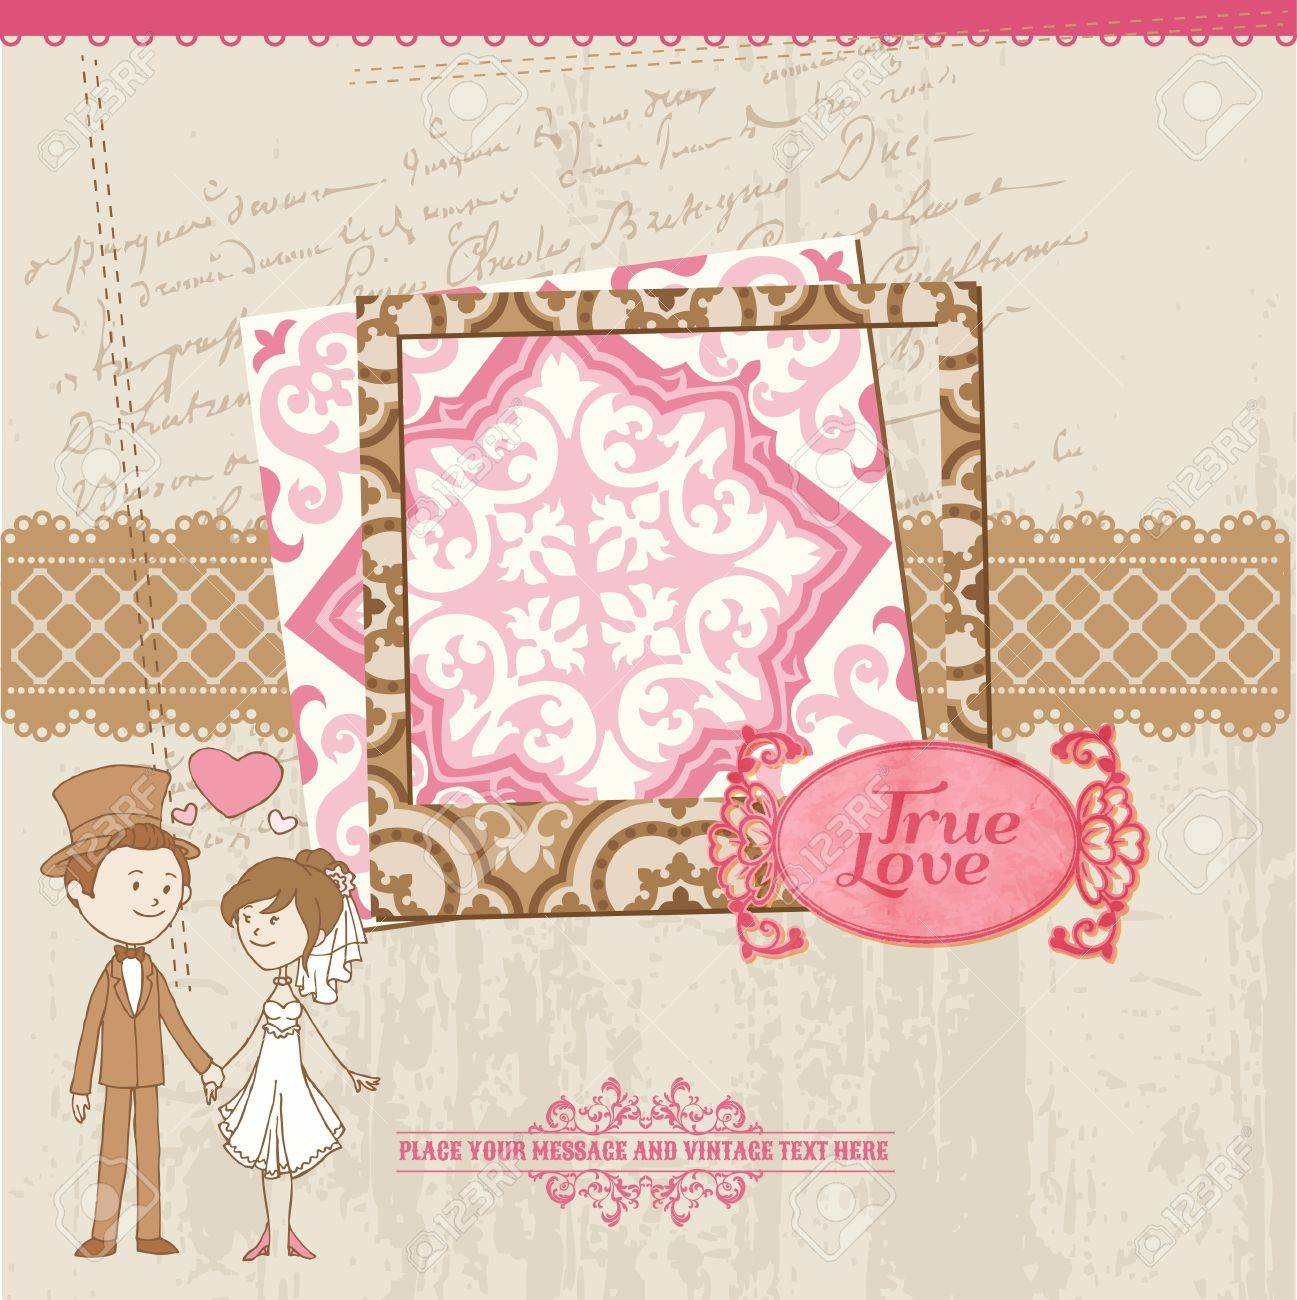 Wedding Scrapbook Card - for wedding design, invitation, congratulation, scrapbook - in vector Stock Vector - 14460639